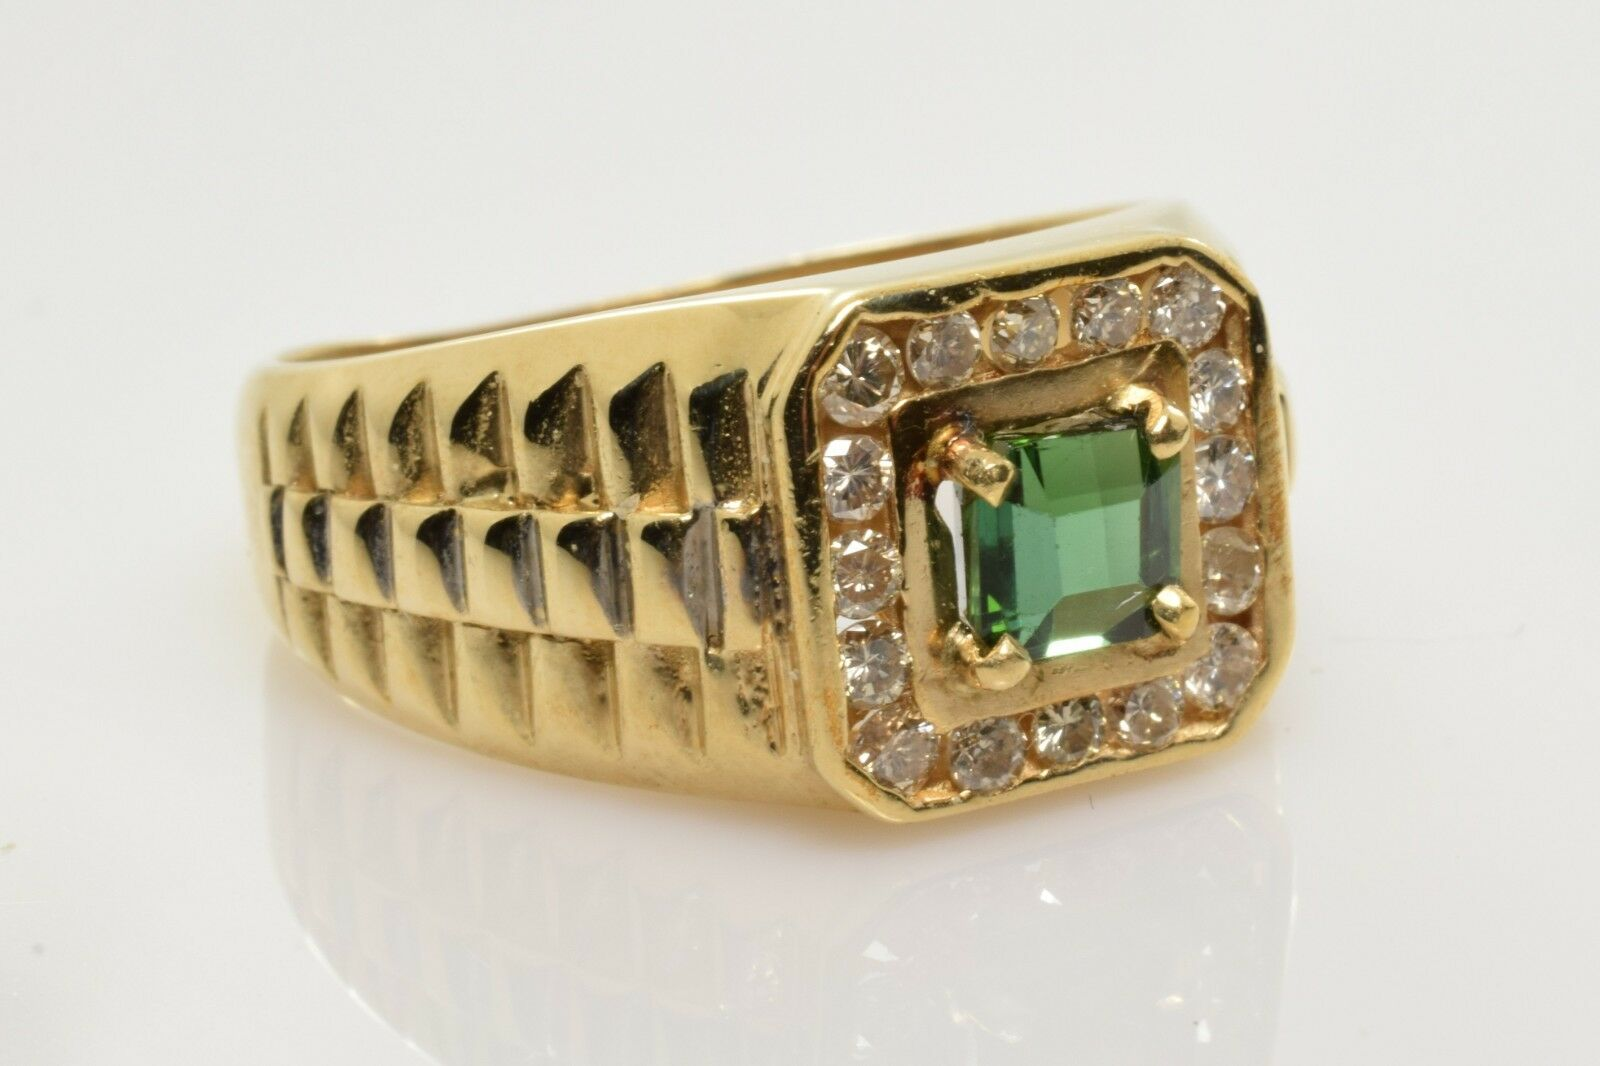 Vintage Green Tourmaline and Diamond Ring in 10k gold 1.17 Carats Size 11